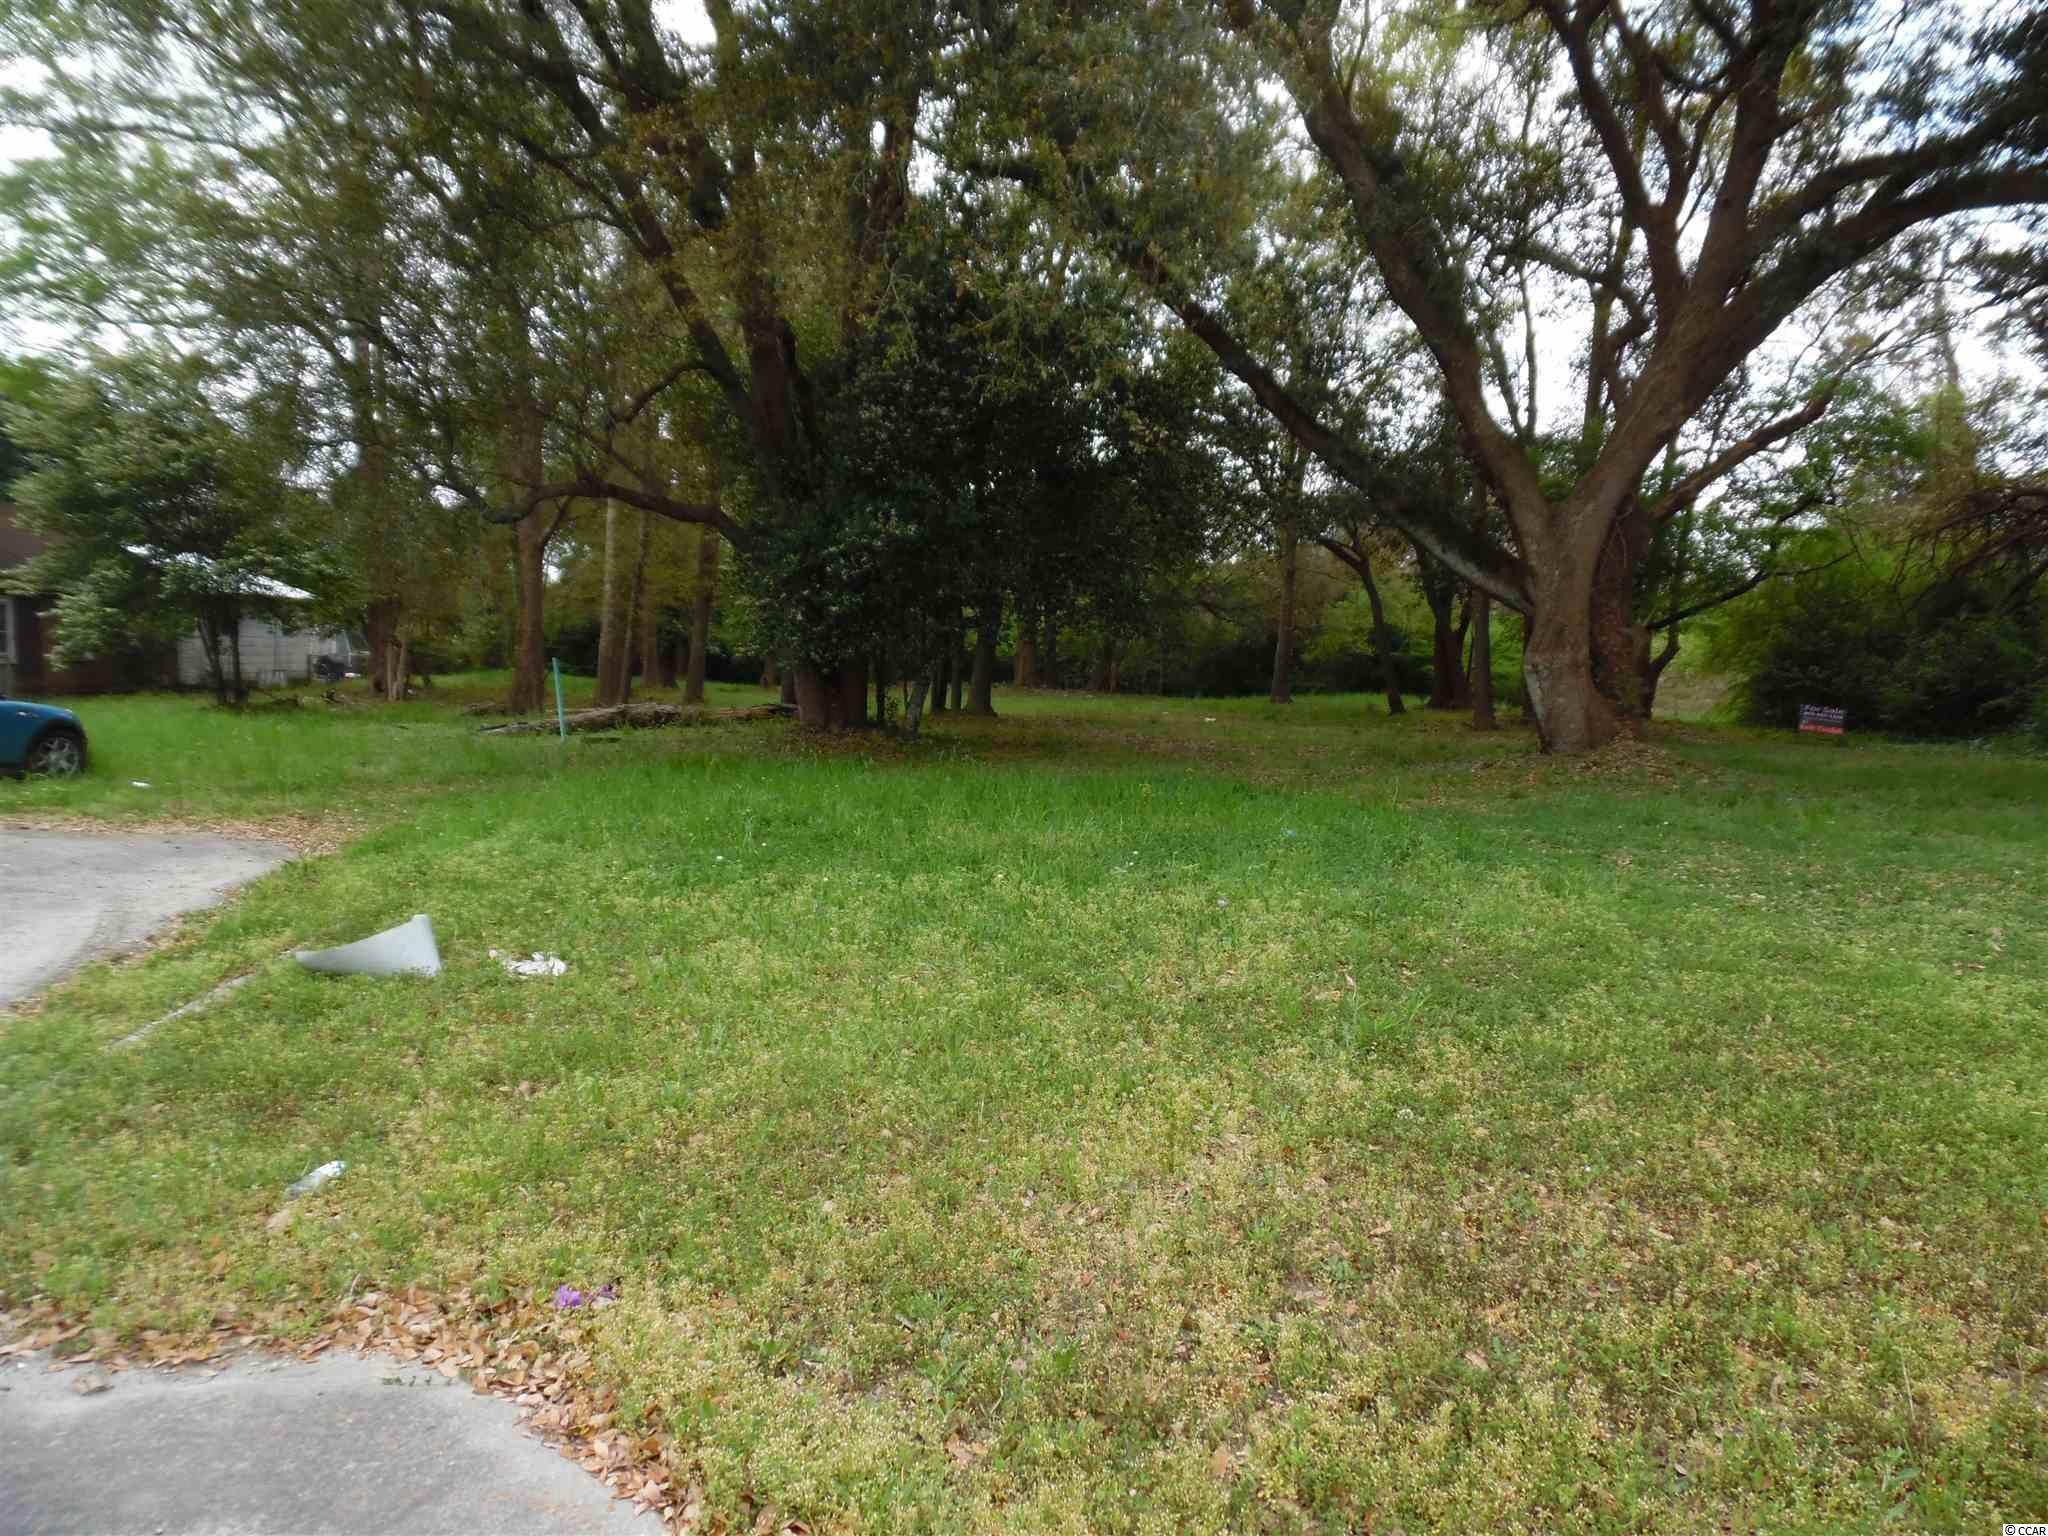 1+ acre in the City of Conway on a major route to Myrtle Beach, SC. Seller has not changed the zoning but it should be easy for the buyer as commercial is on adjoining property. Adjoining lots are available to extend this lot size. Call your agent today for more information.